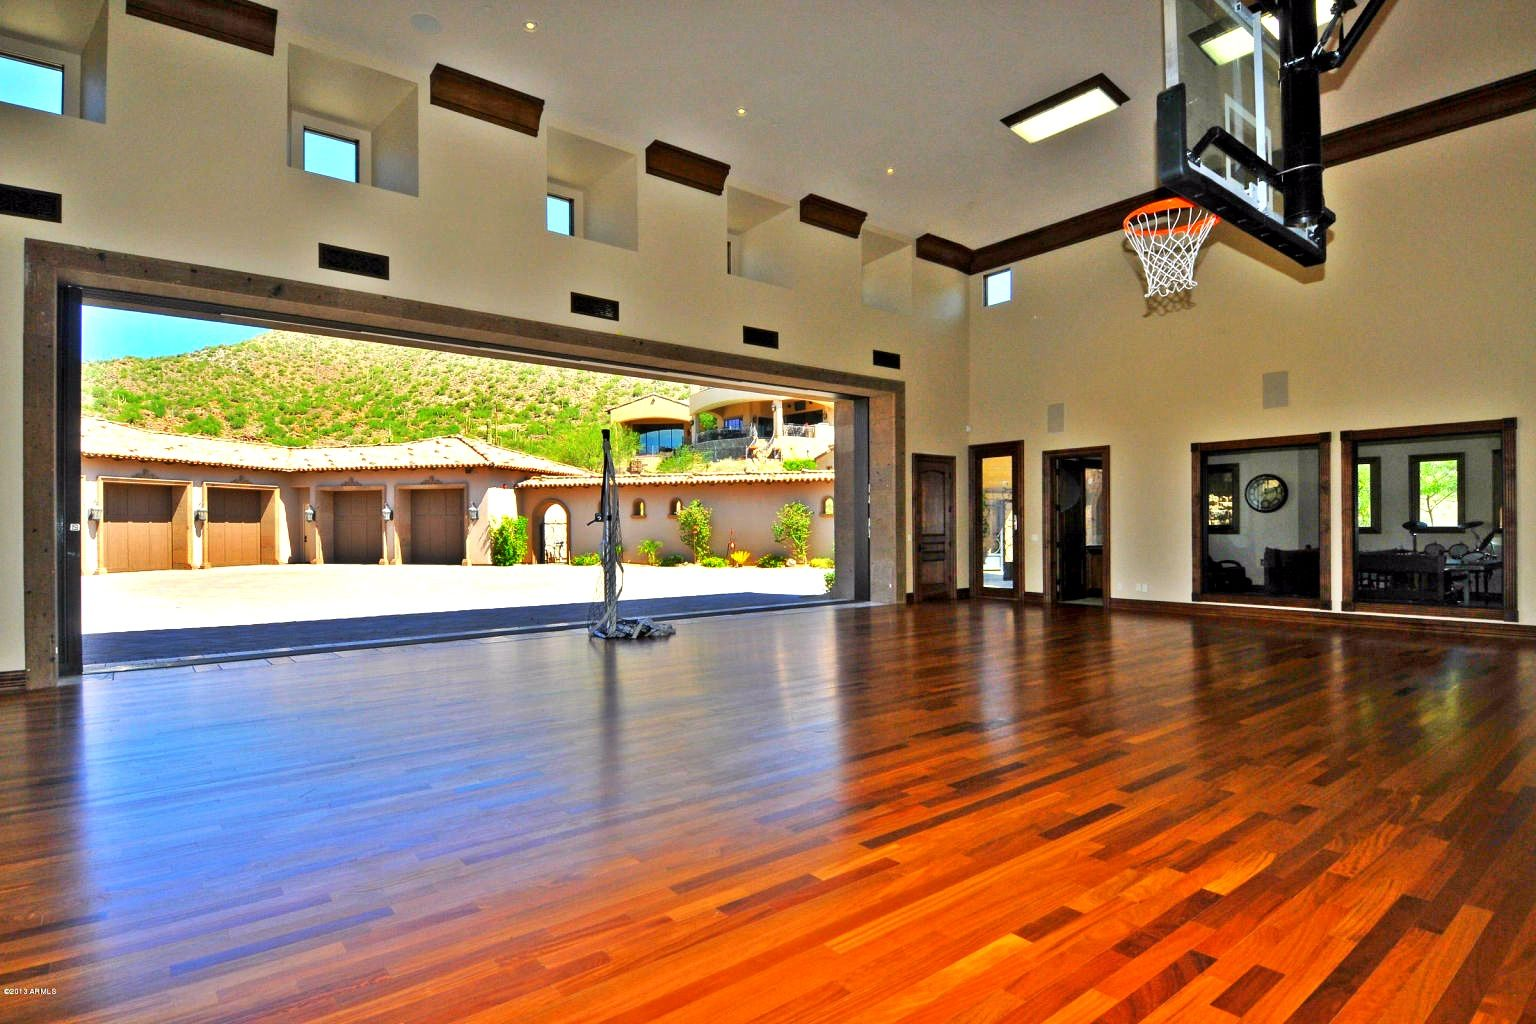 Indoor basketball court diamond point 1 las sendas for Design indoor basketball court